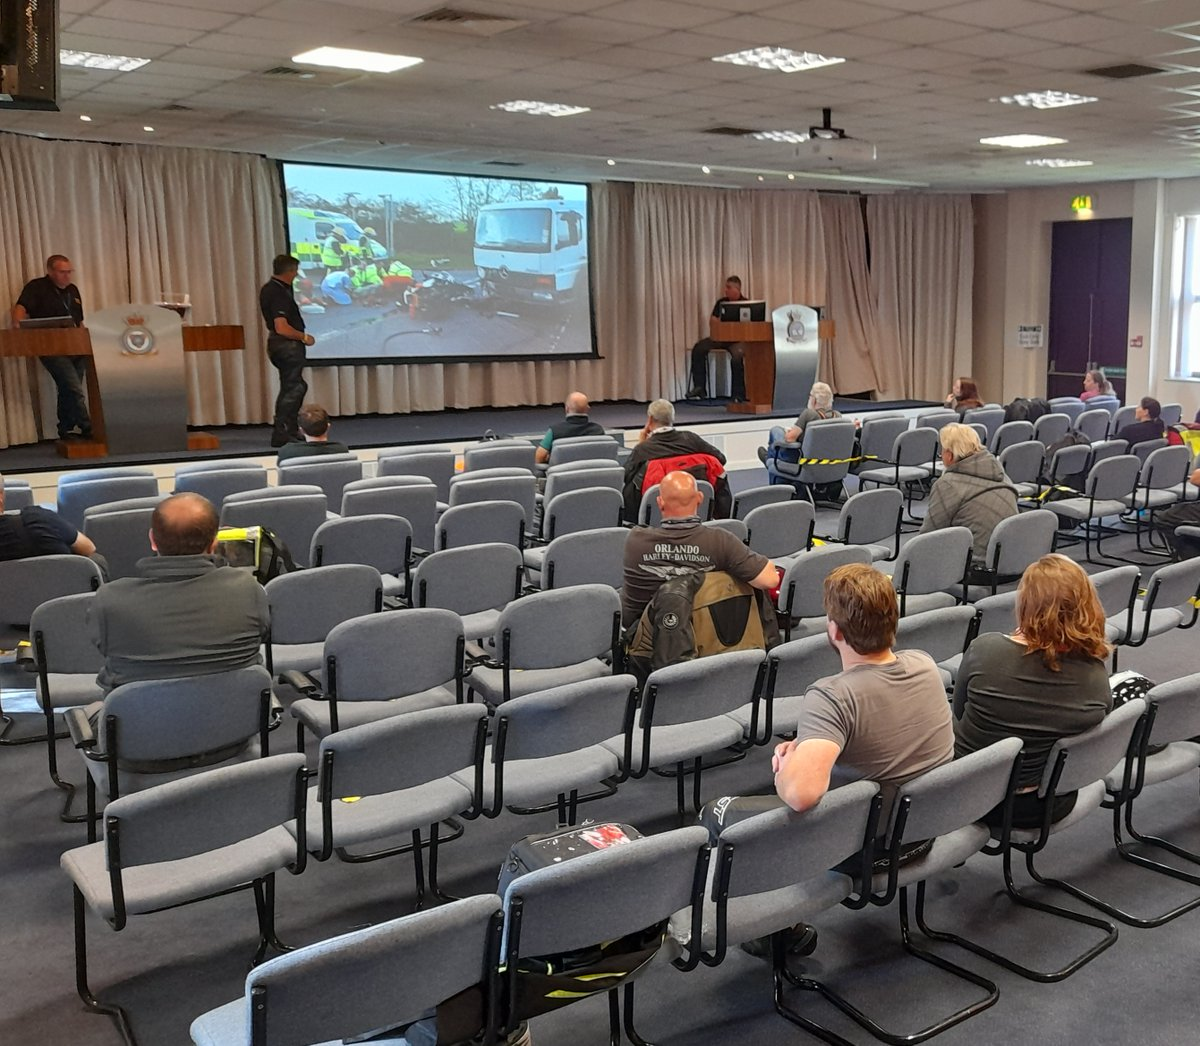 On Saturday, RAF Shawbury hosted a socially distanced 'Biker Down', motorcycle safety training day. The event, attended by 25 students and 5 staff, was delivered by @WMerciaPolice, @OFFICIALWMAS and @SAMMShropshire, supported by RAF Shawbury, @AscentFlight and Babcock personnel.